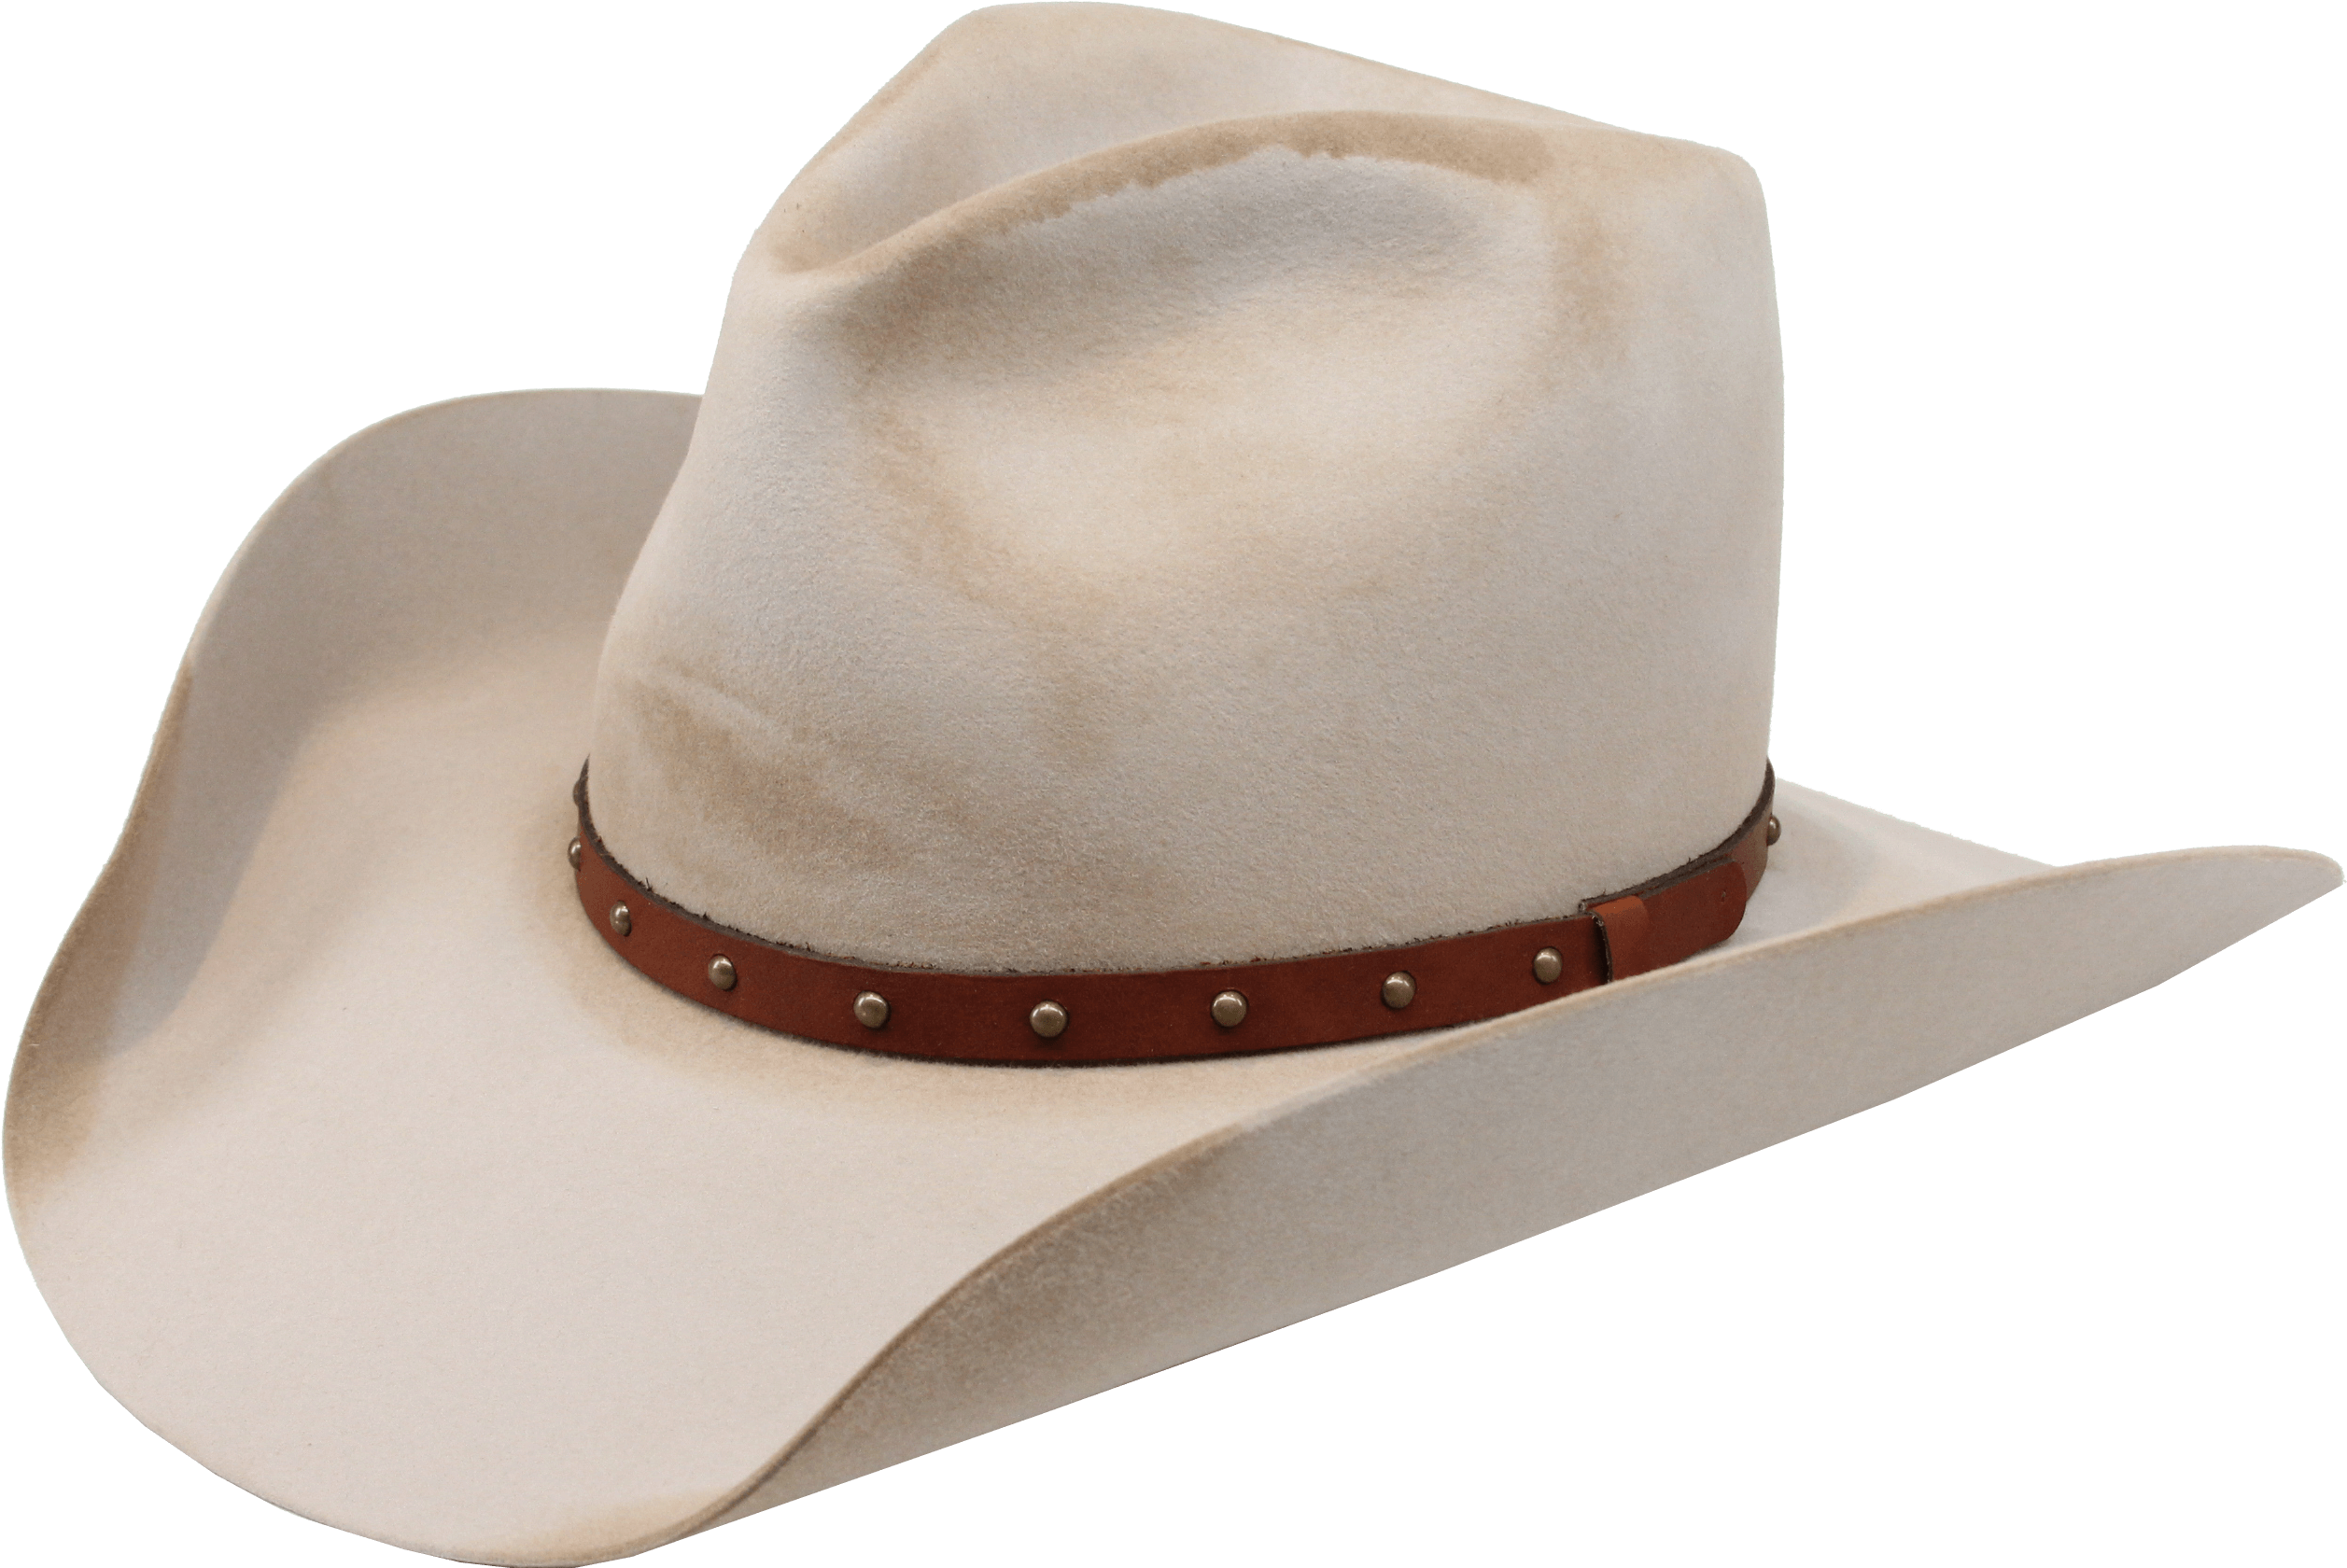 Download Cowboy Hat Png Image With Transparent Background Greeley Hat Works Ranch Worn Light Pinch Front Hat Png Image With No Background Pngkey Com Choose from 200+ cowboy hat graphic resources and download in the form of png, eps, ai or psd. download cowboy hat png image with